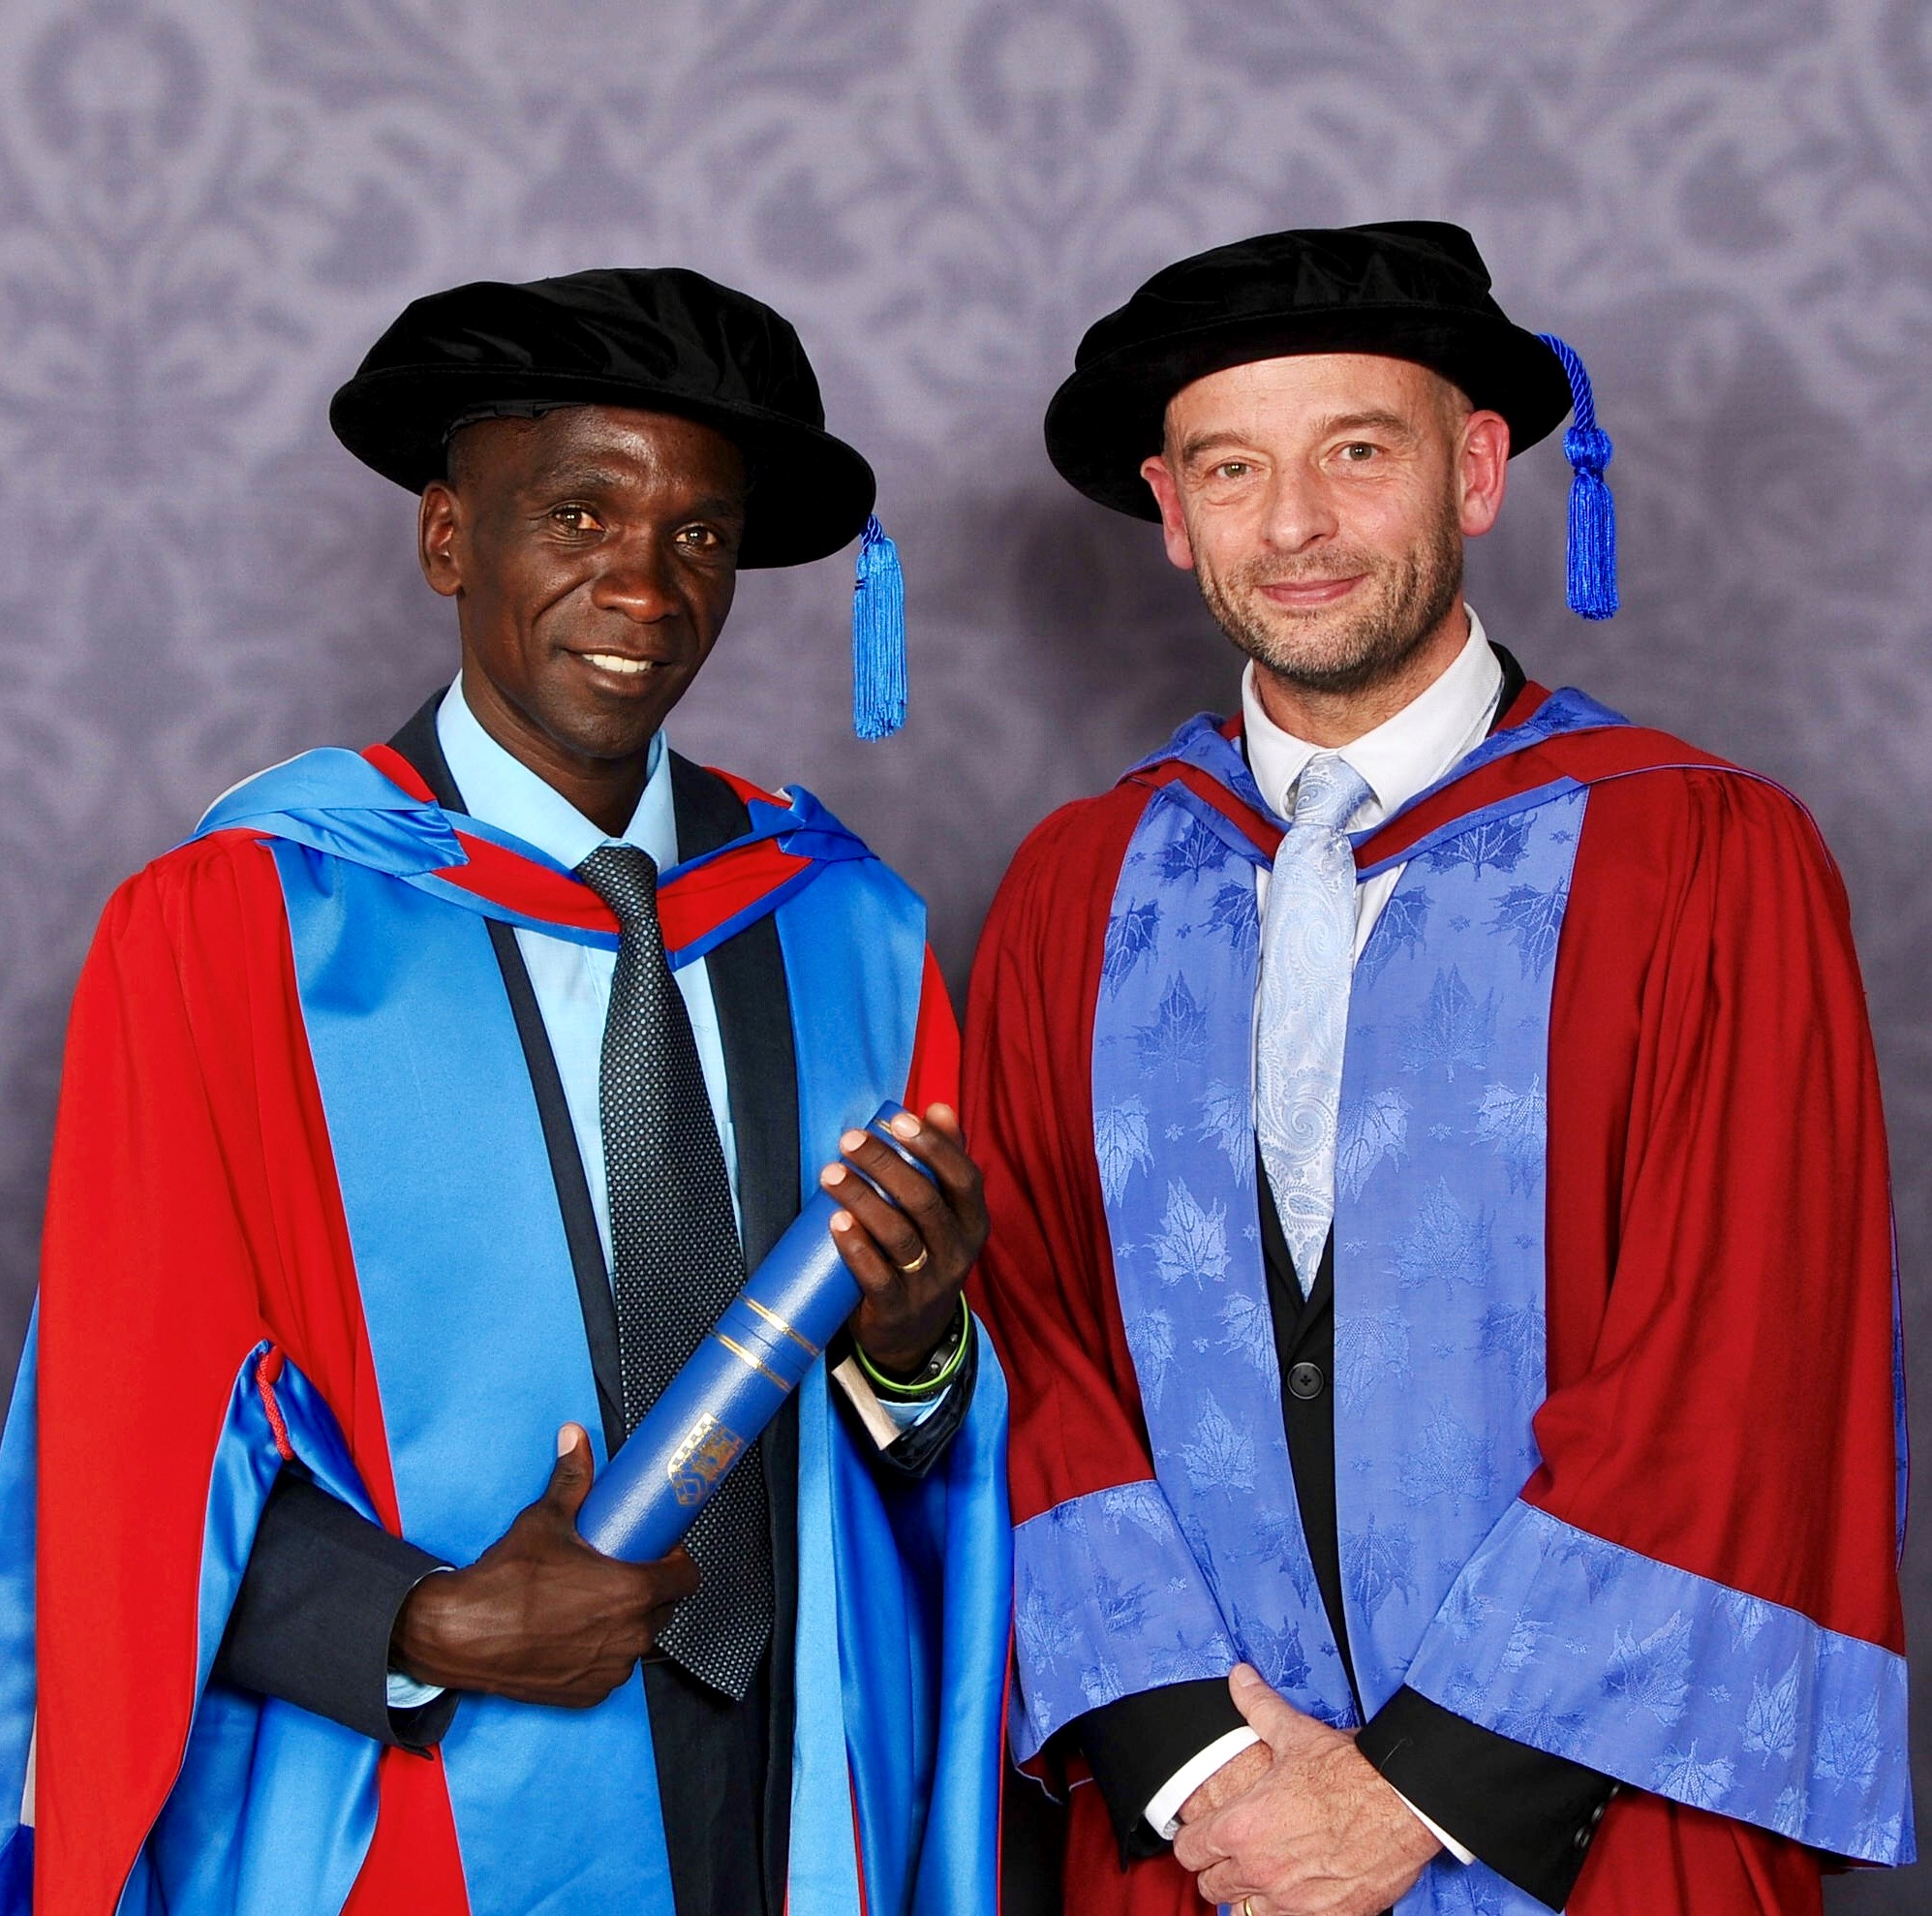 Eliud Kipchoge with Prof Andrew Jones as he receives an honorary degree from the University of Exeter last year (University of Exeter/PA).